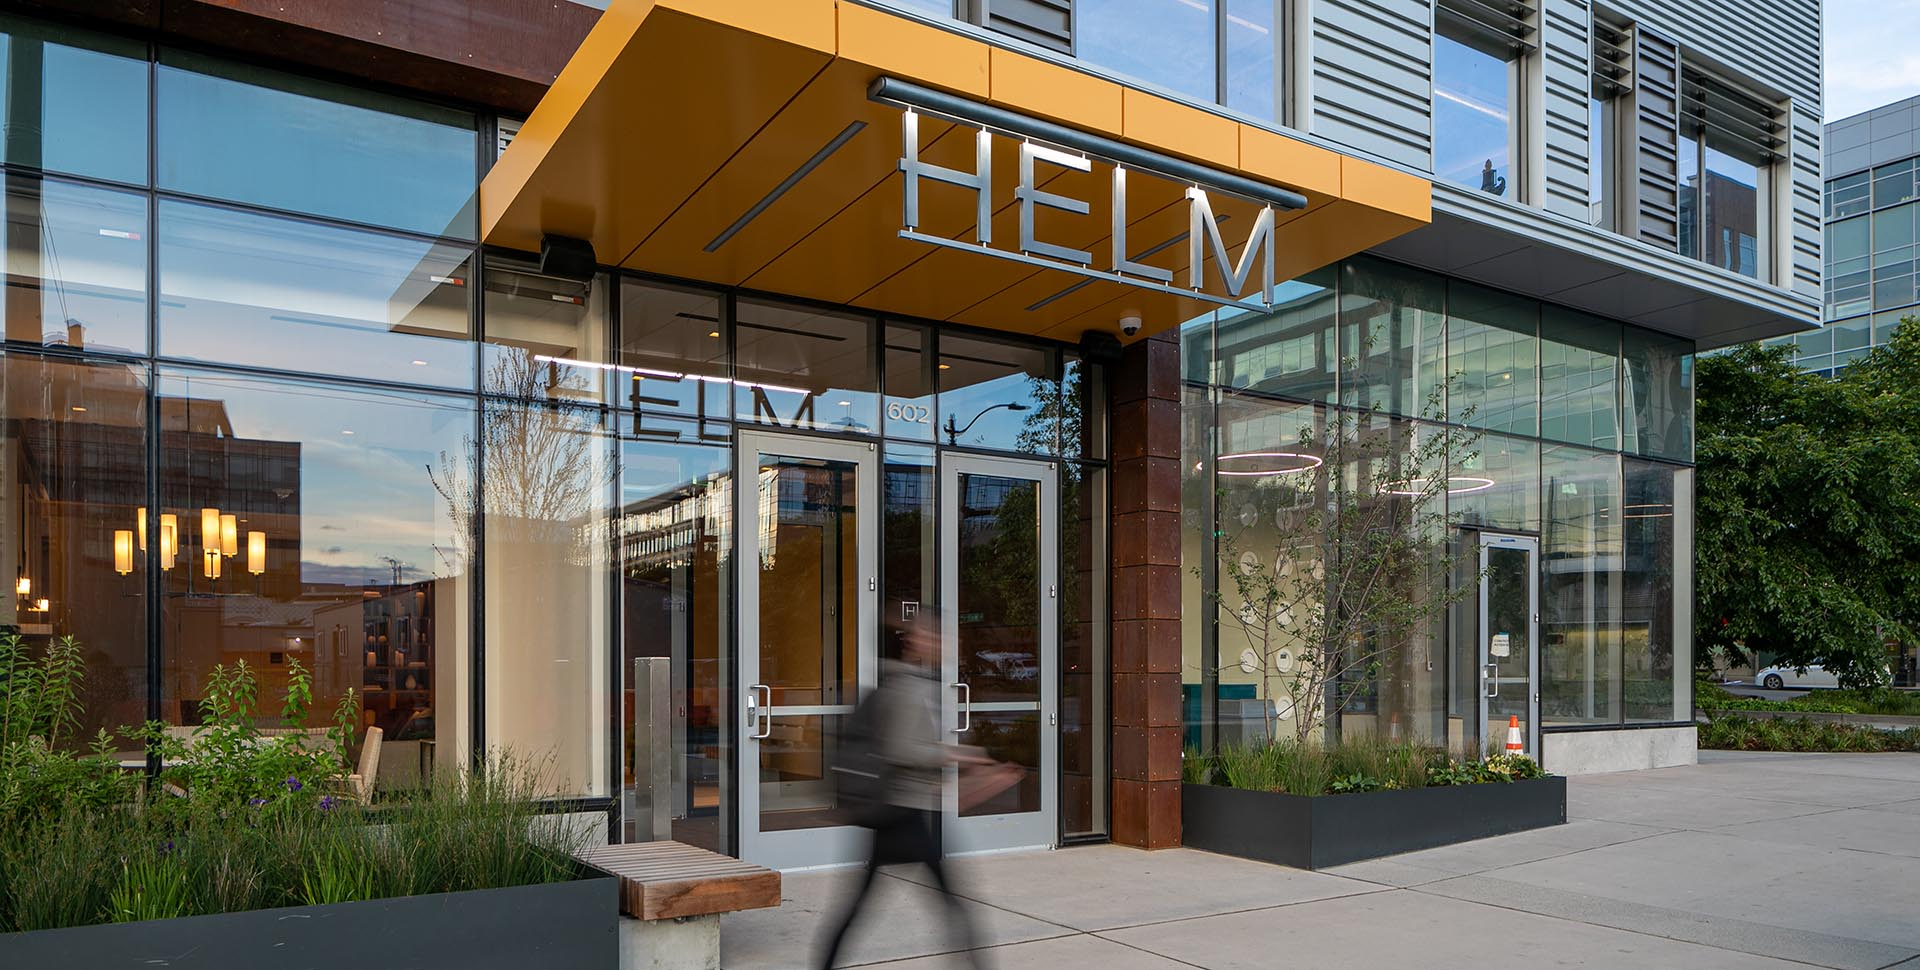 Image of Helm Entrance